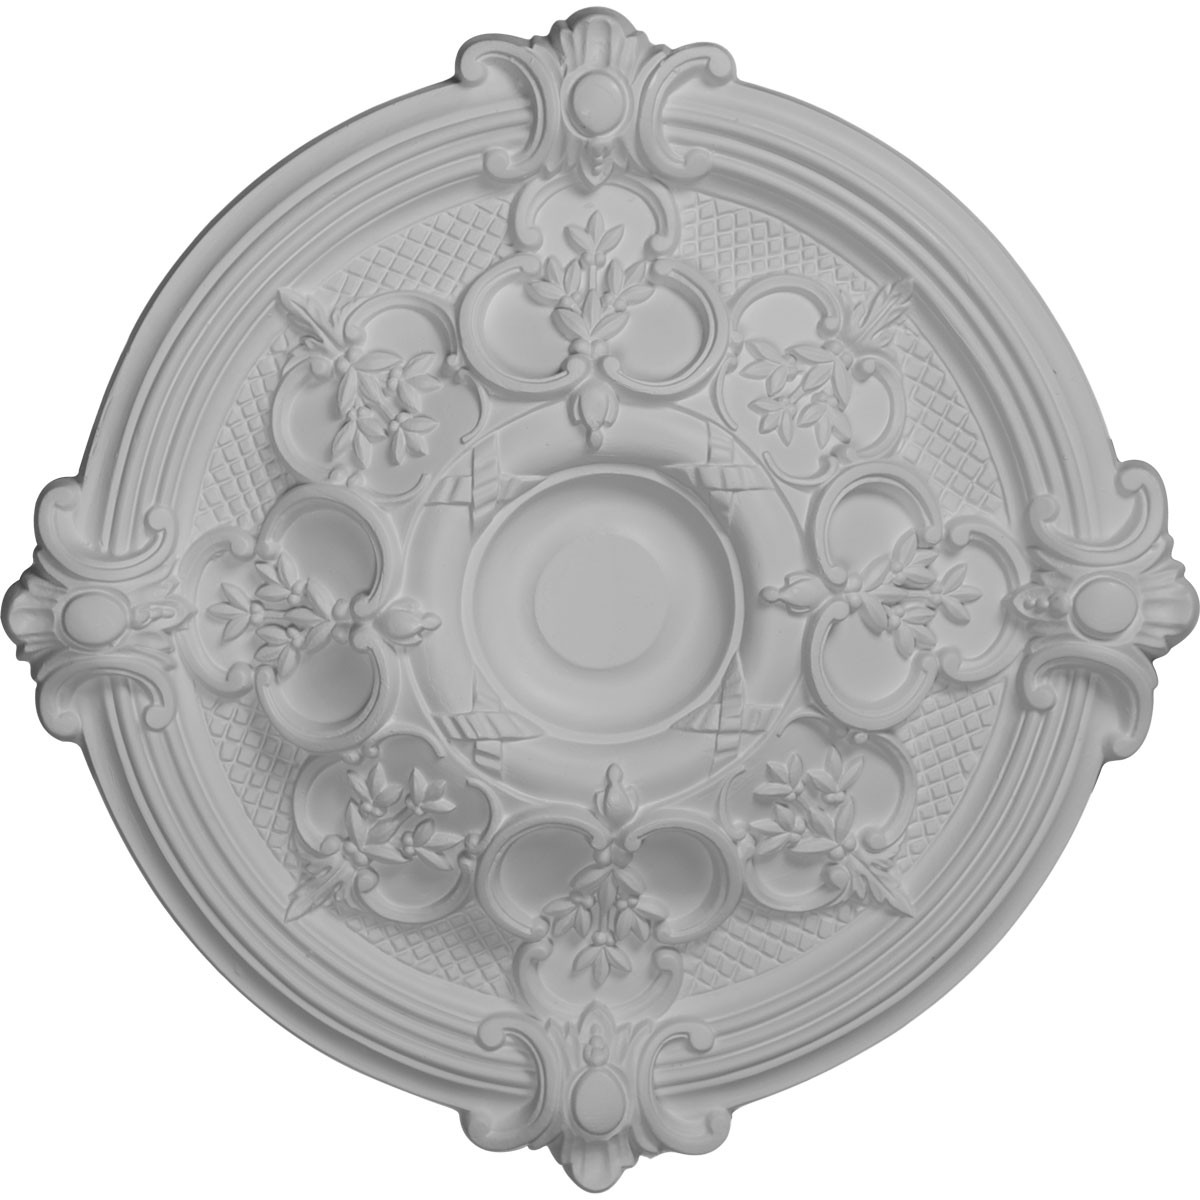 "EM-CM17HA - 17 3/8""OD x 1 3/4""P Hamilton Ceiling Medallion (Fits Canopies up to 3 3/4"")"